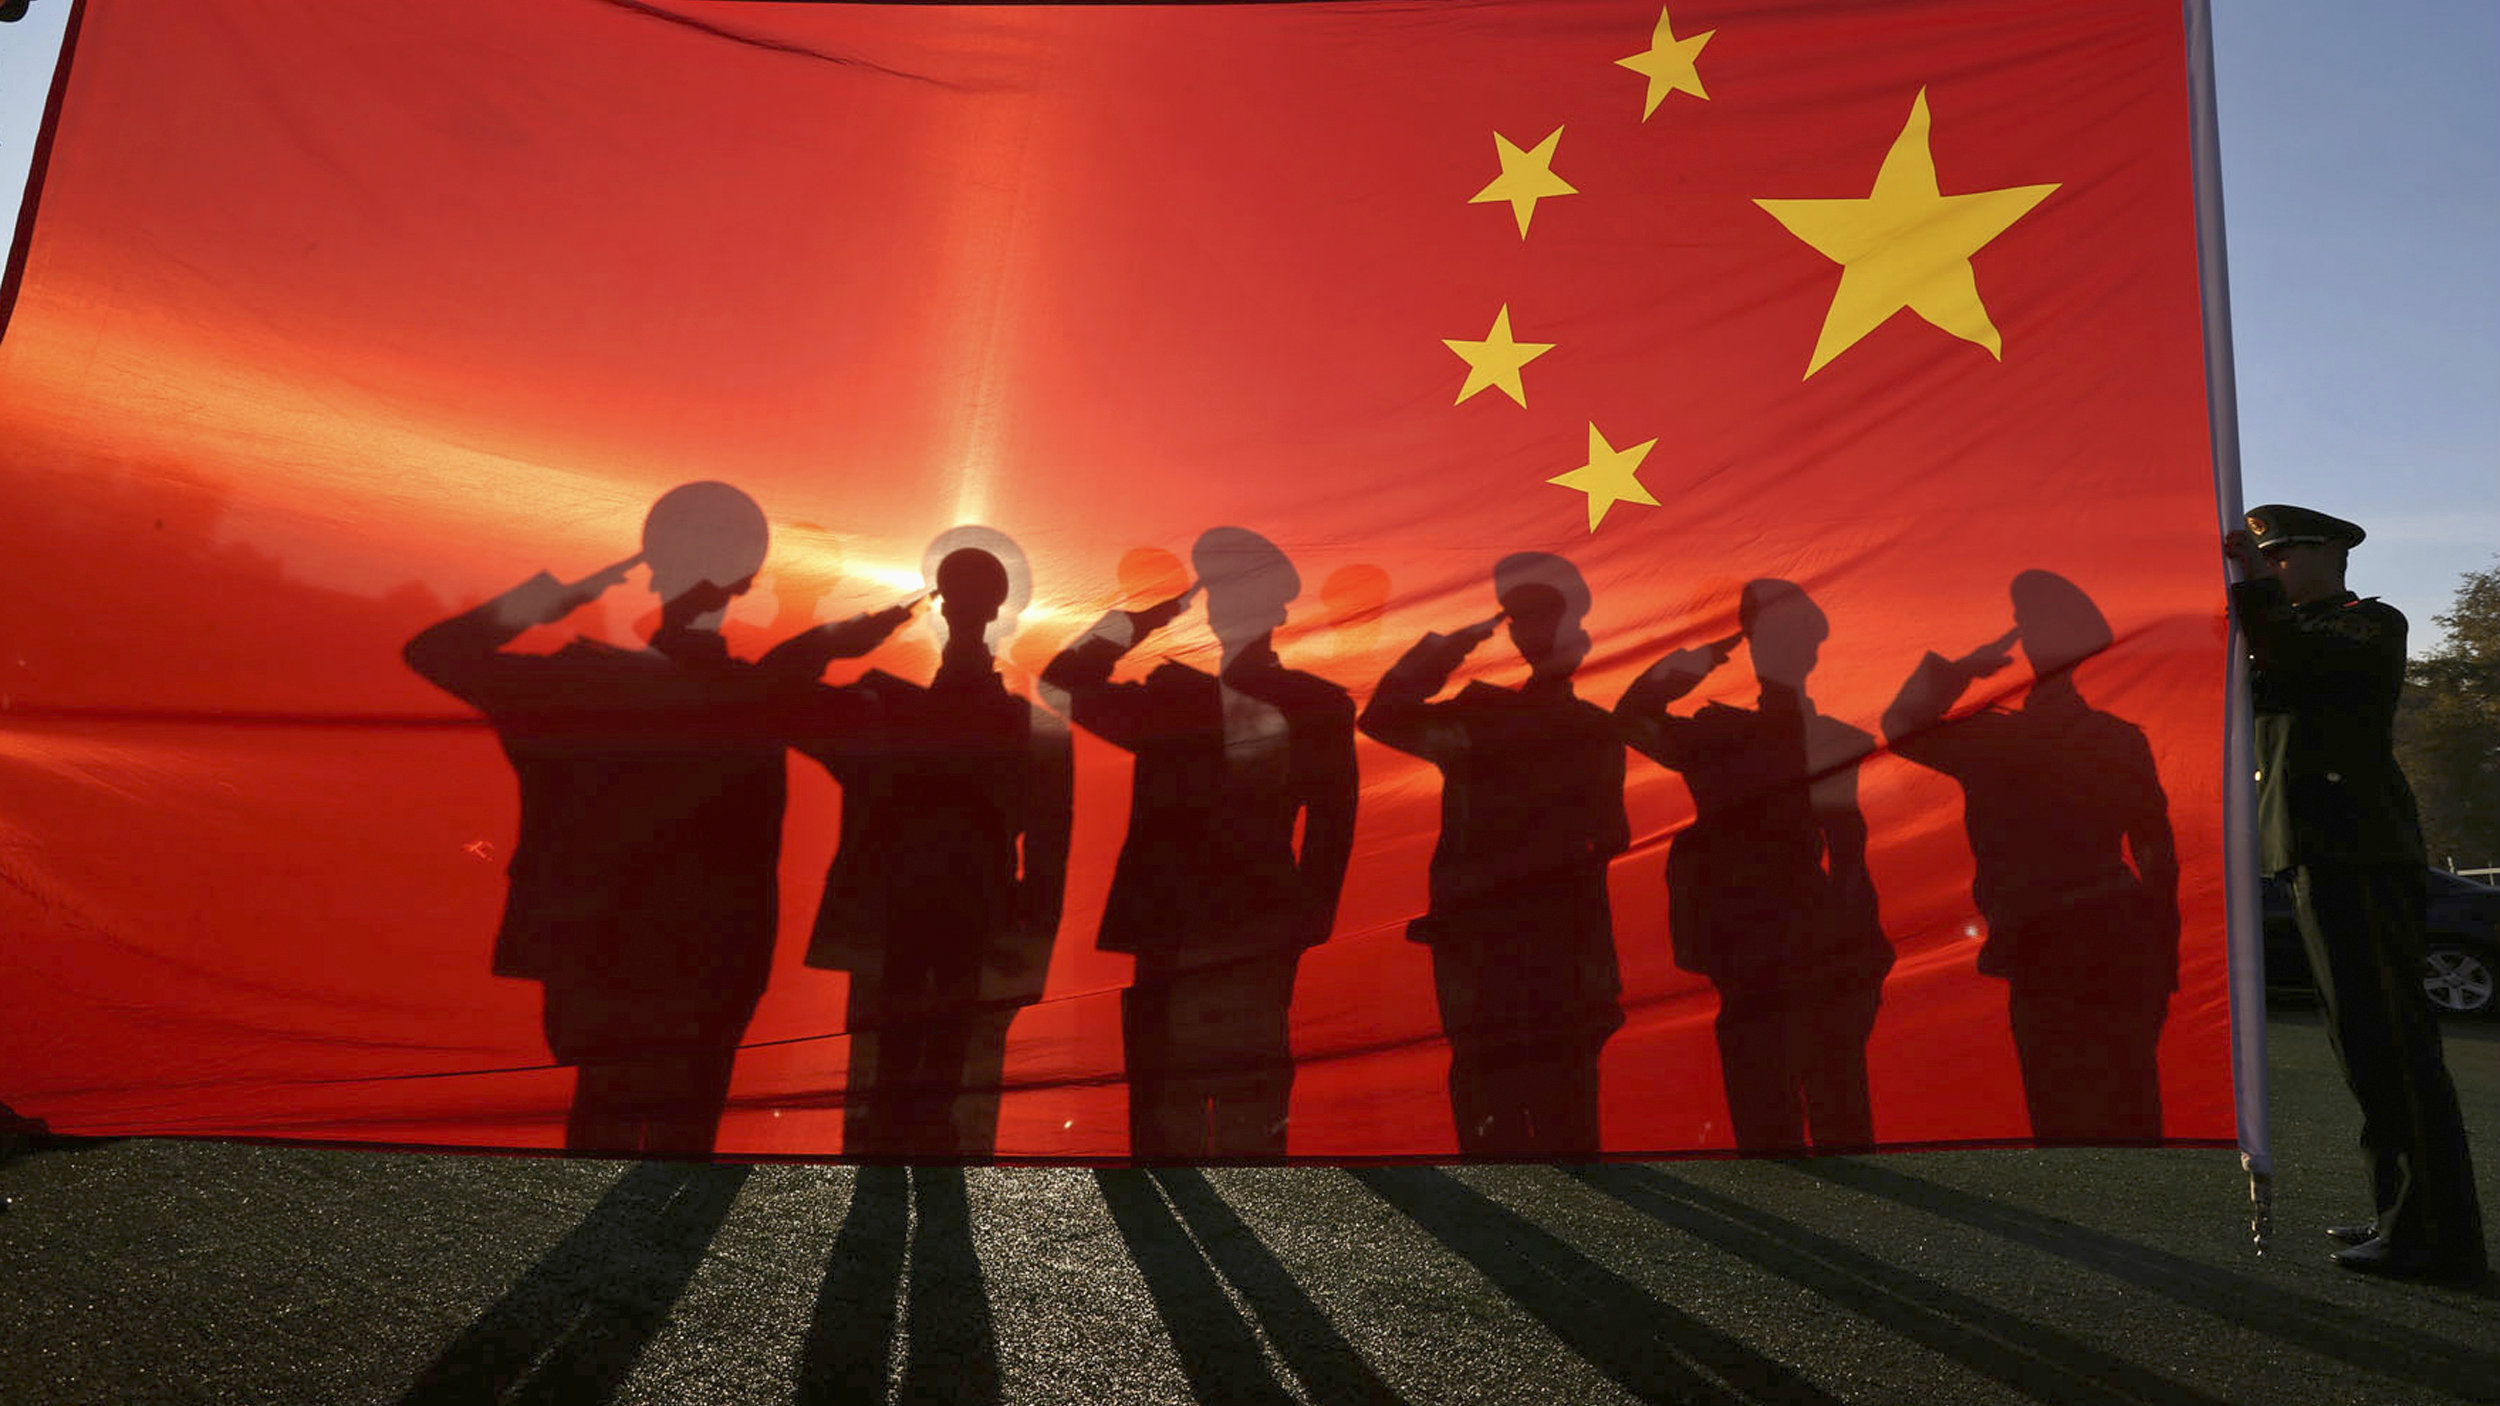 Retired paramilitary policemen, who conduct the daily national flag raising and lowering ceremony on Tiananmen Square, salute to a Chinese national flag during a farewell ceremony in Beijing, November 24, 2014.